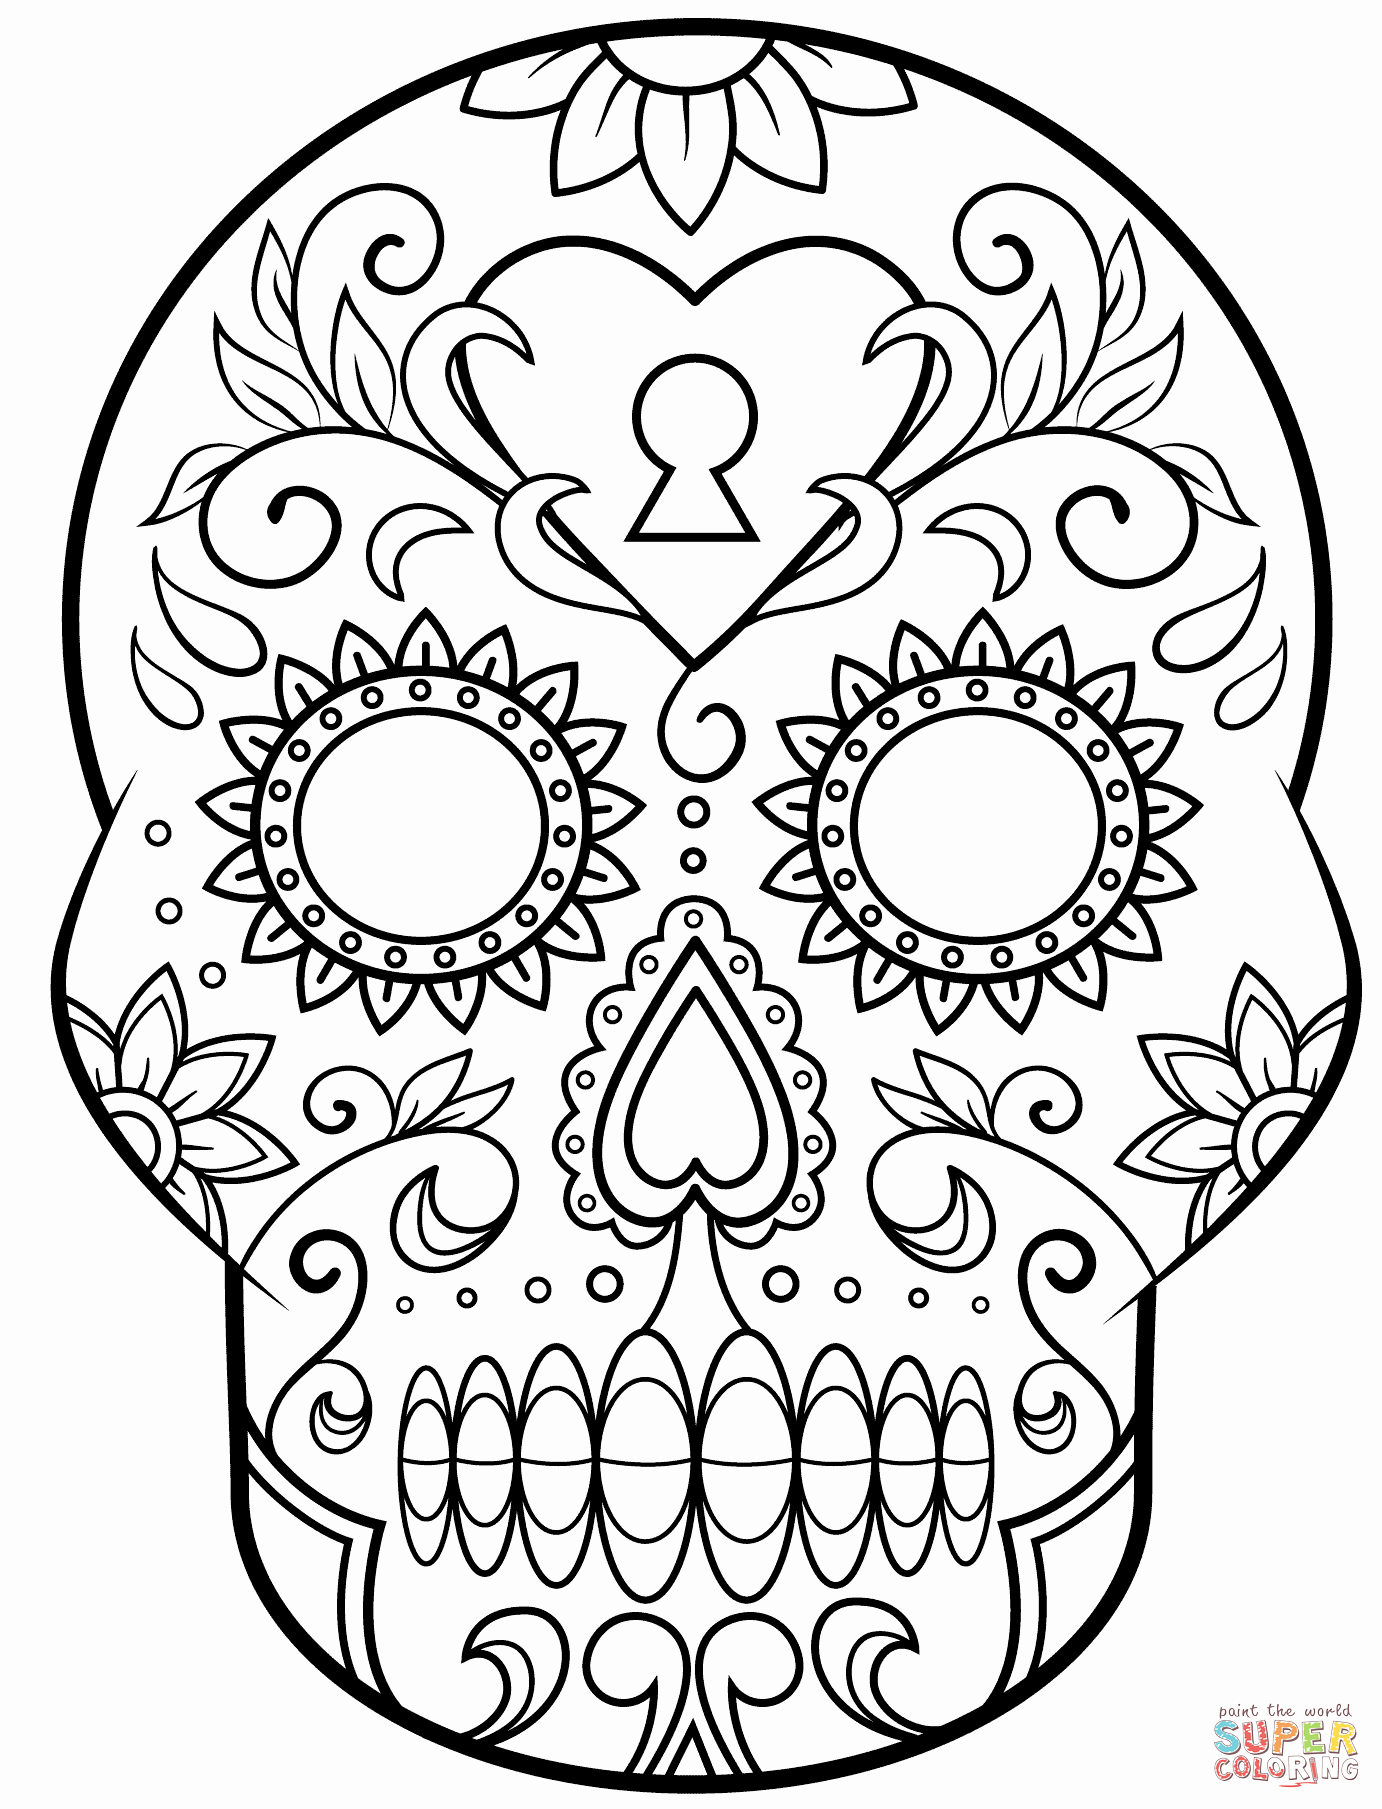 Sugar Skull Outlines Best Of Day Of the Dead Sugar Skull Coloring Page